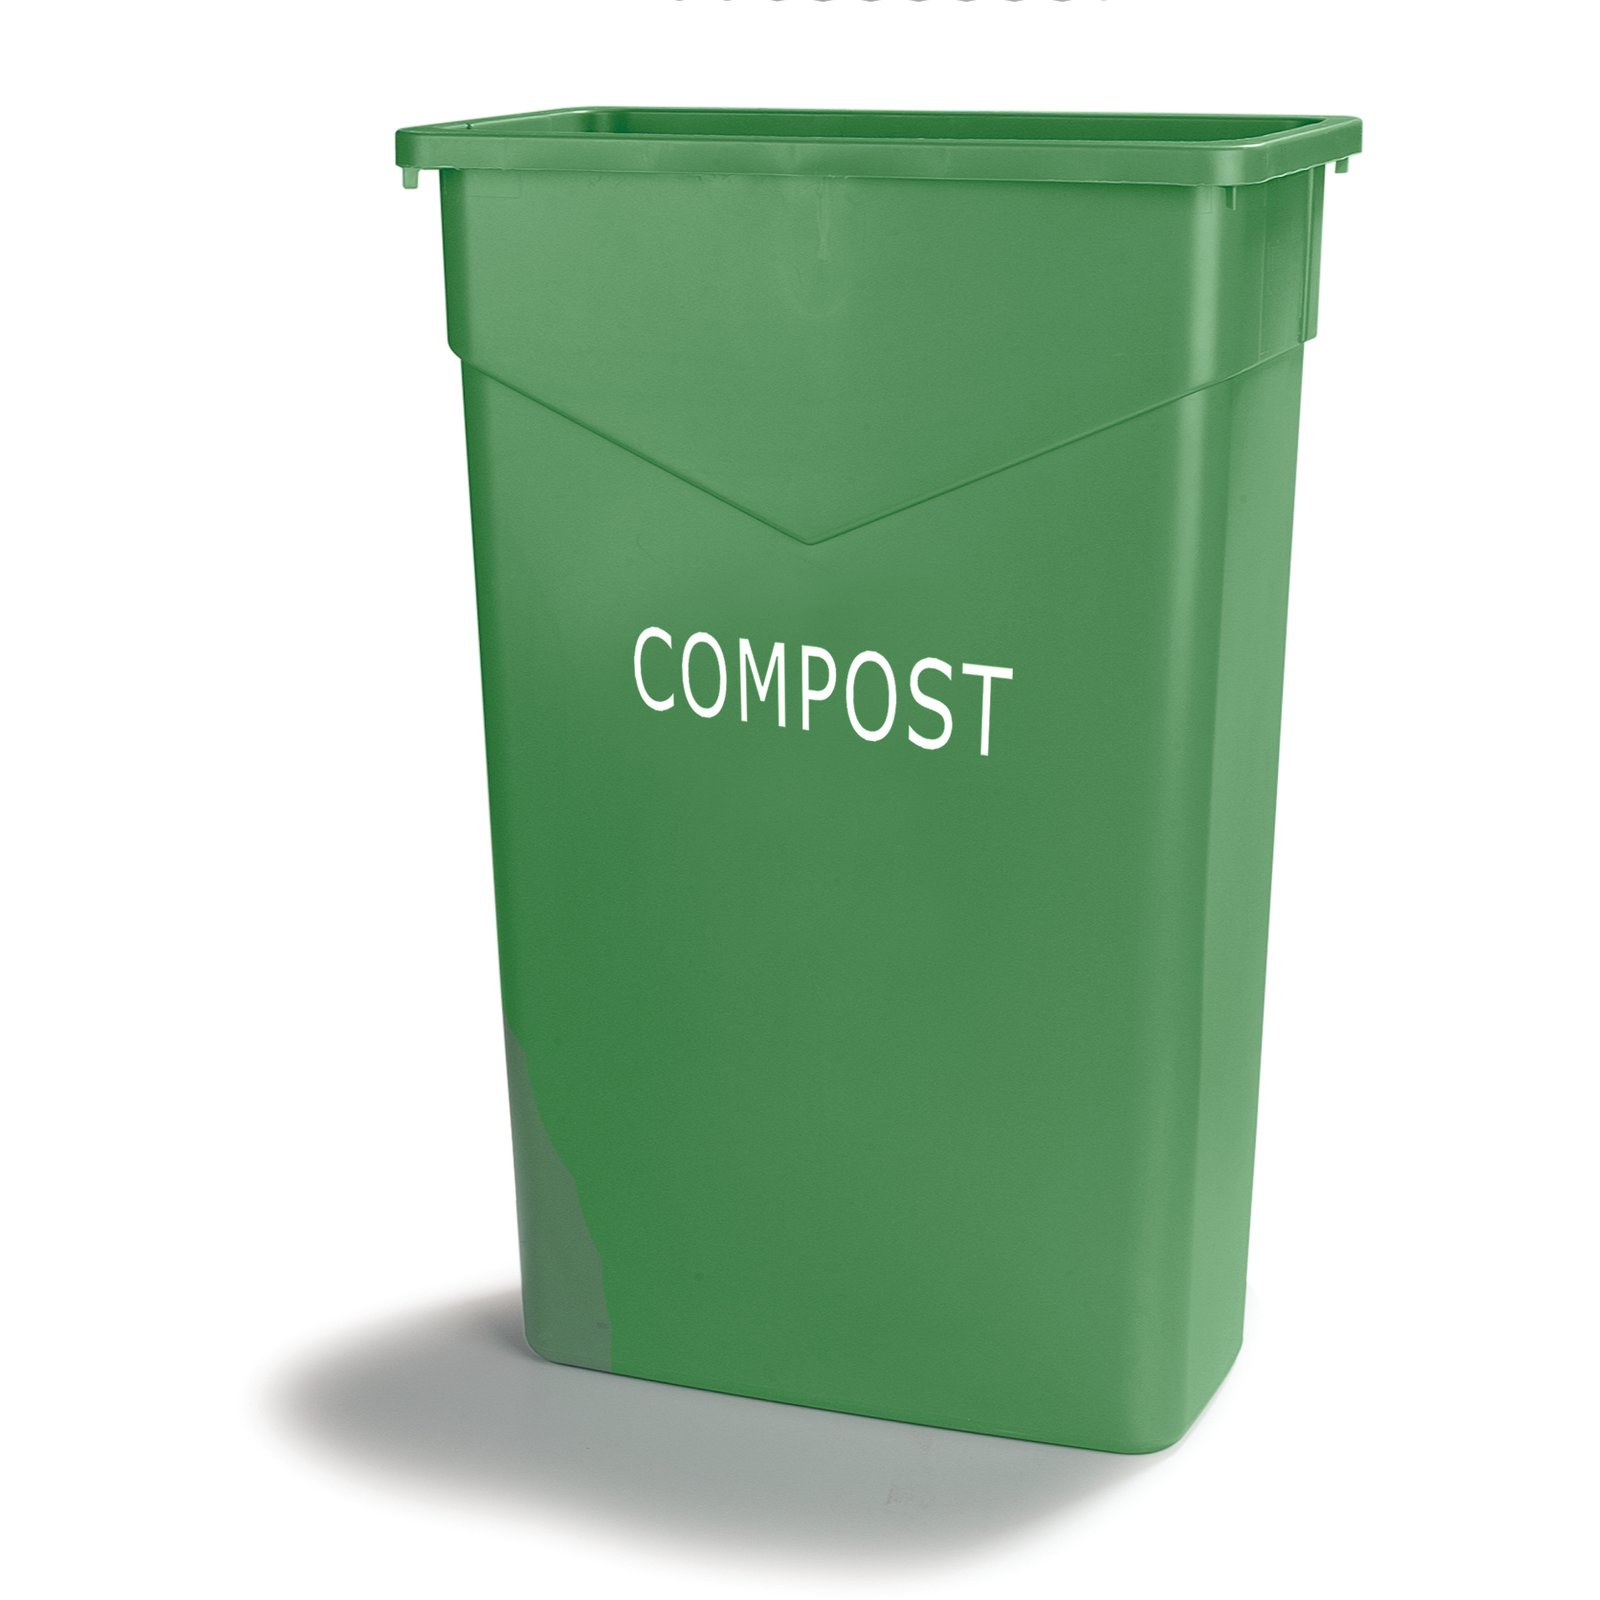 342023cmp09 trimline rectangle compost waste container 23 gallon green carlisle - Garden waste containers ...